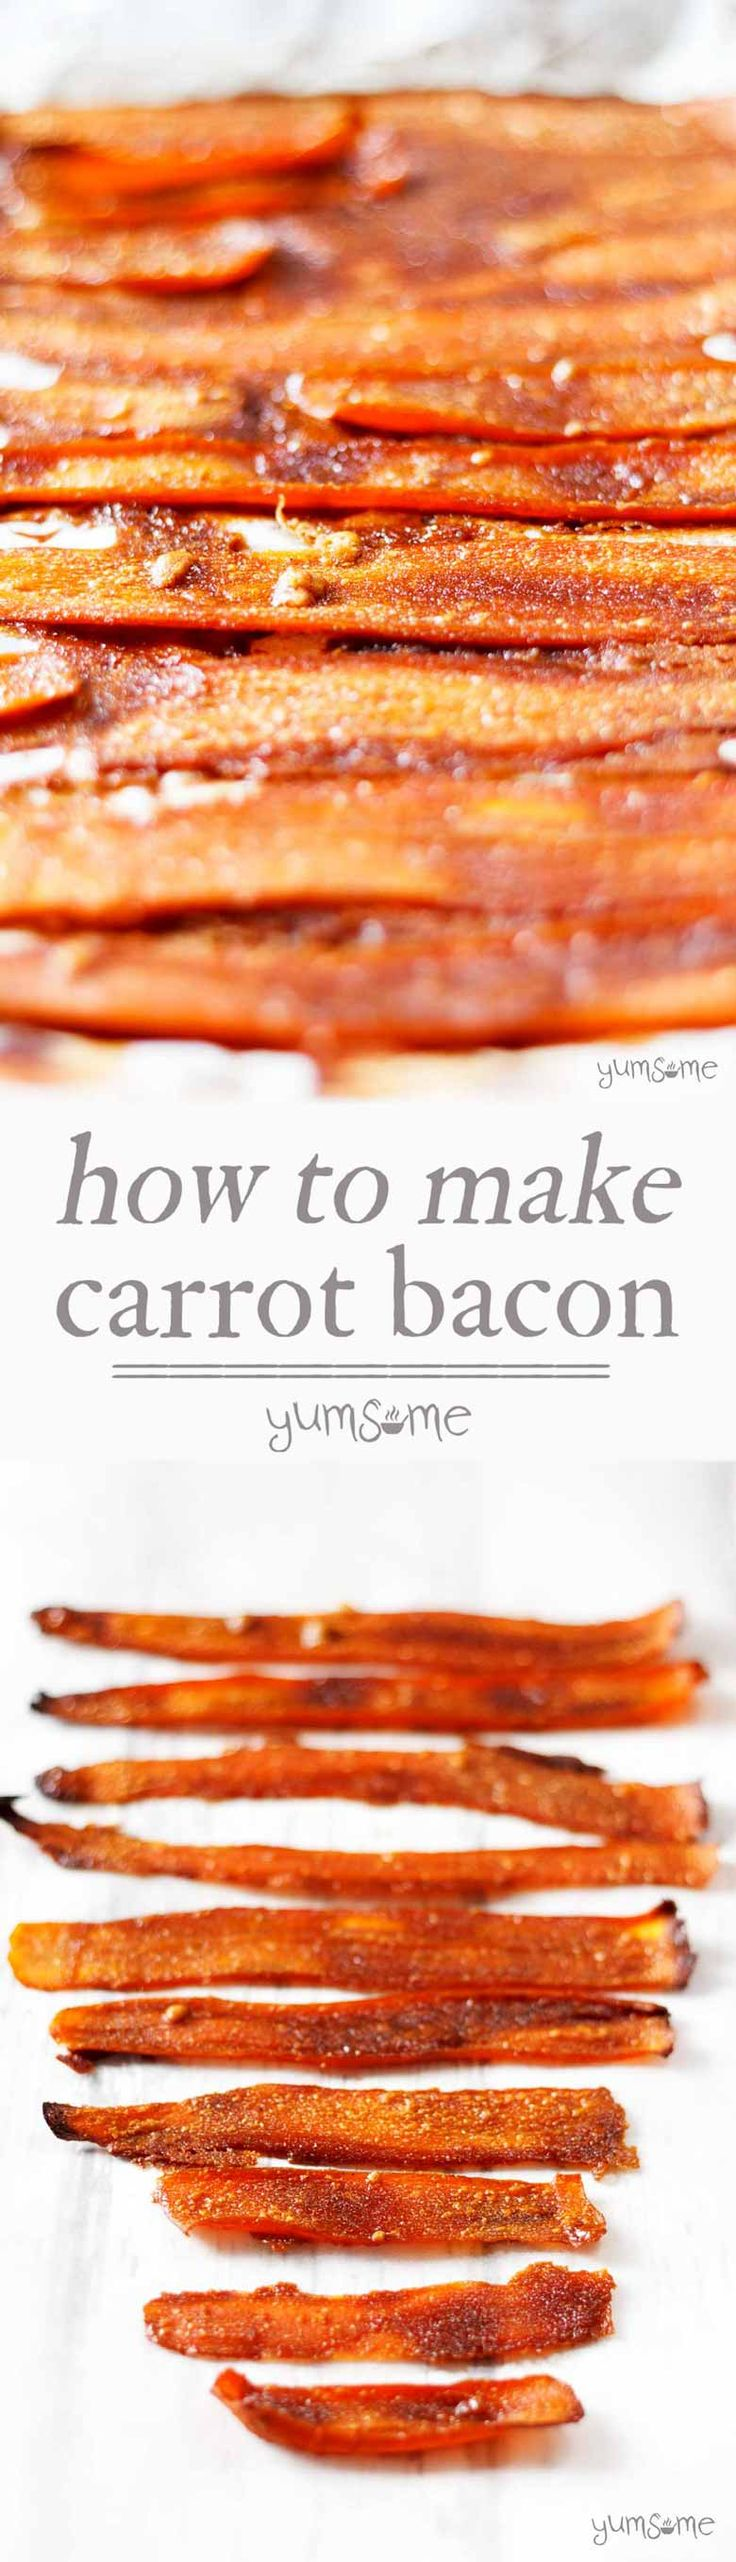 This delicious, easy-to-make vegan bacon substitute is made from carrots and five other store cupboard ingredients.   yumsome.com via @yums0me